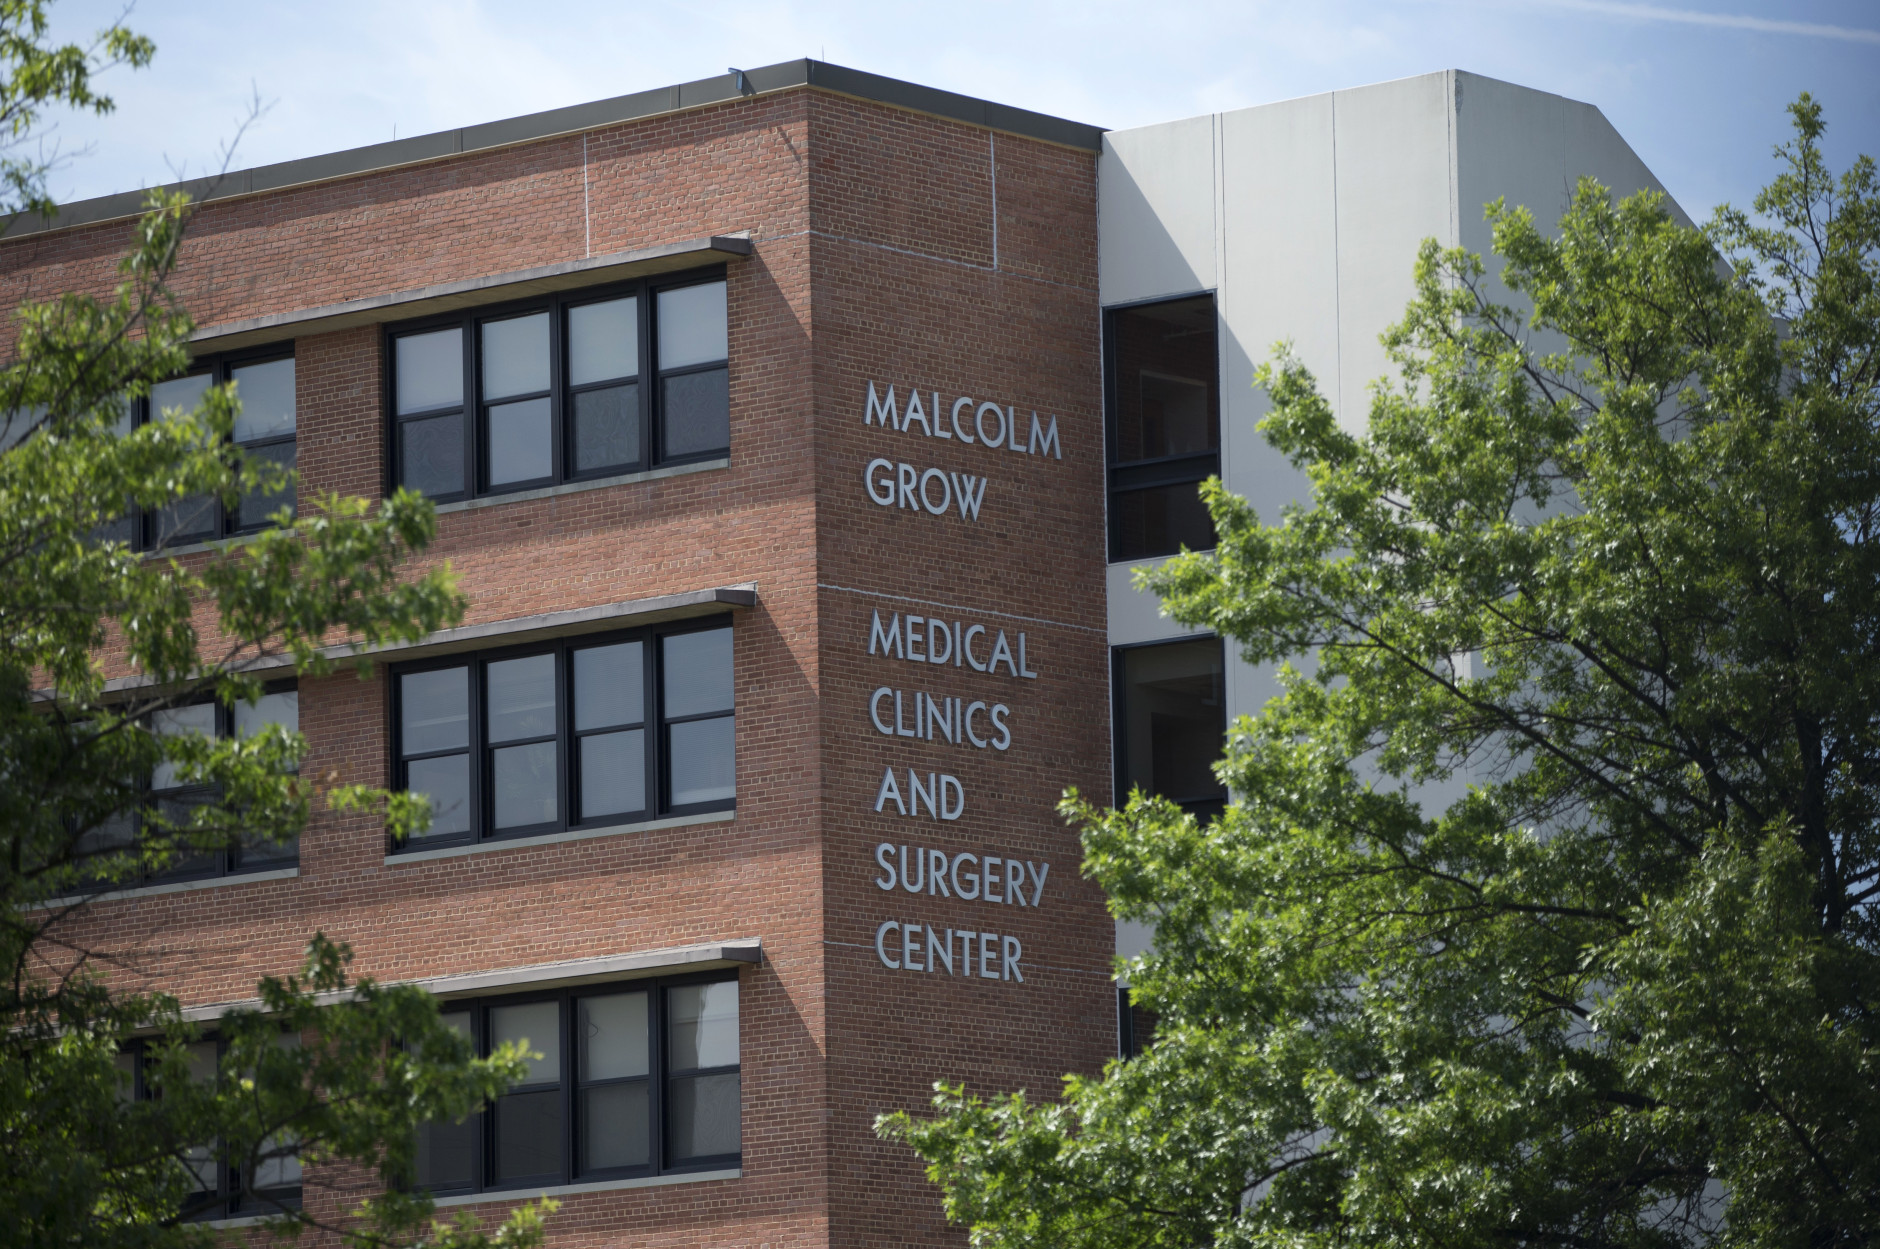 The Malcolm Grow Medical Center is seen at Joint Base Andrew, Md., Thursday, June 30, 2016. The military post near Washington said a lockdown was lifted Thursday except for a medical building where an active shooter was reported earlier in the day. Joint Base Andrews said in a tweet that the all-clear was given for the base except for the medical building. The base did not say why the Malcolm Grow Medical Facility remained on lockdown. (AP Photo/Carolyn Kaster)